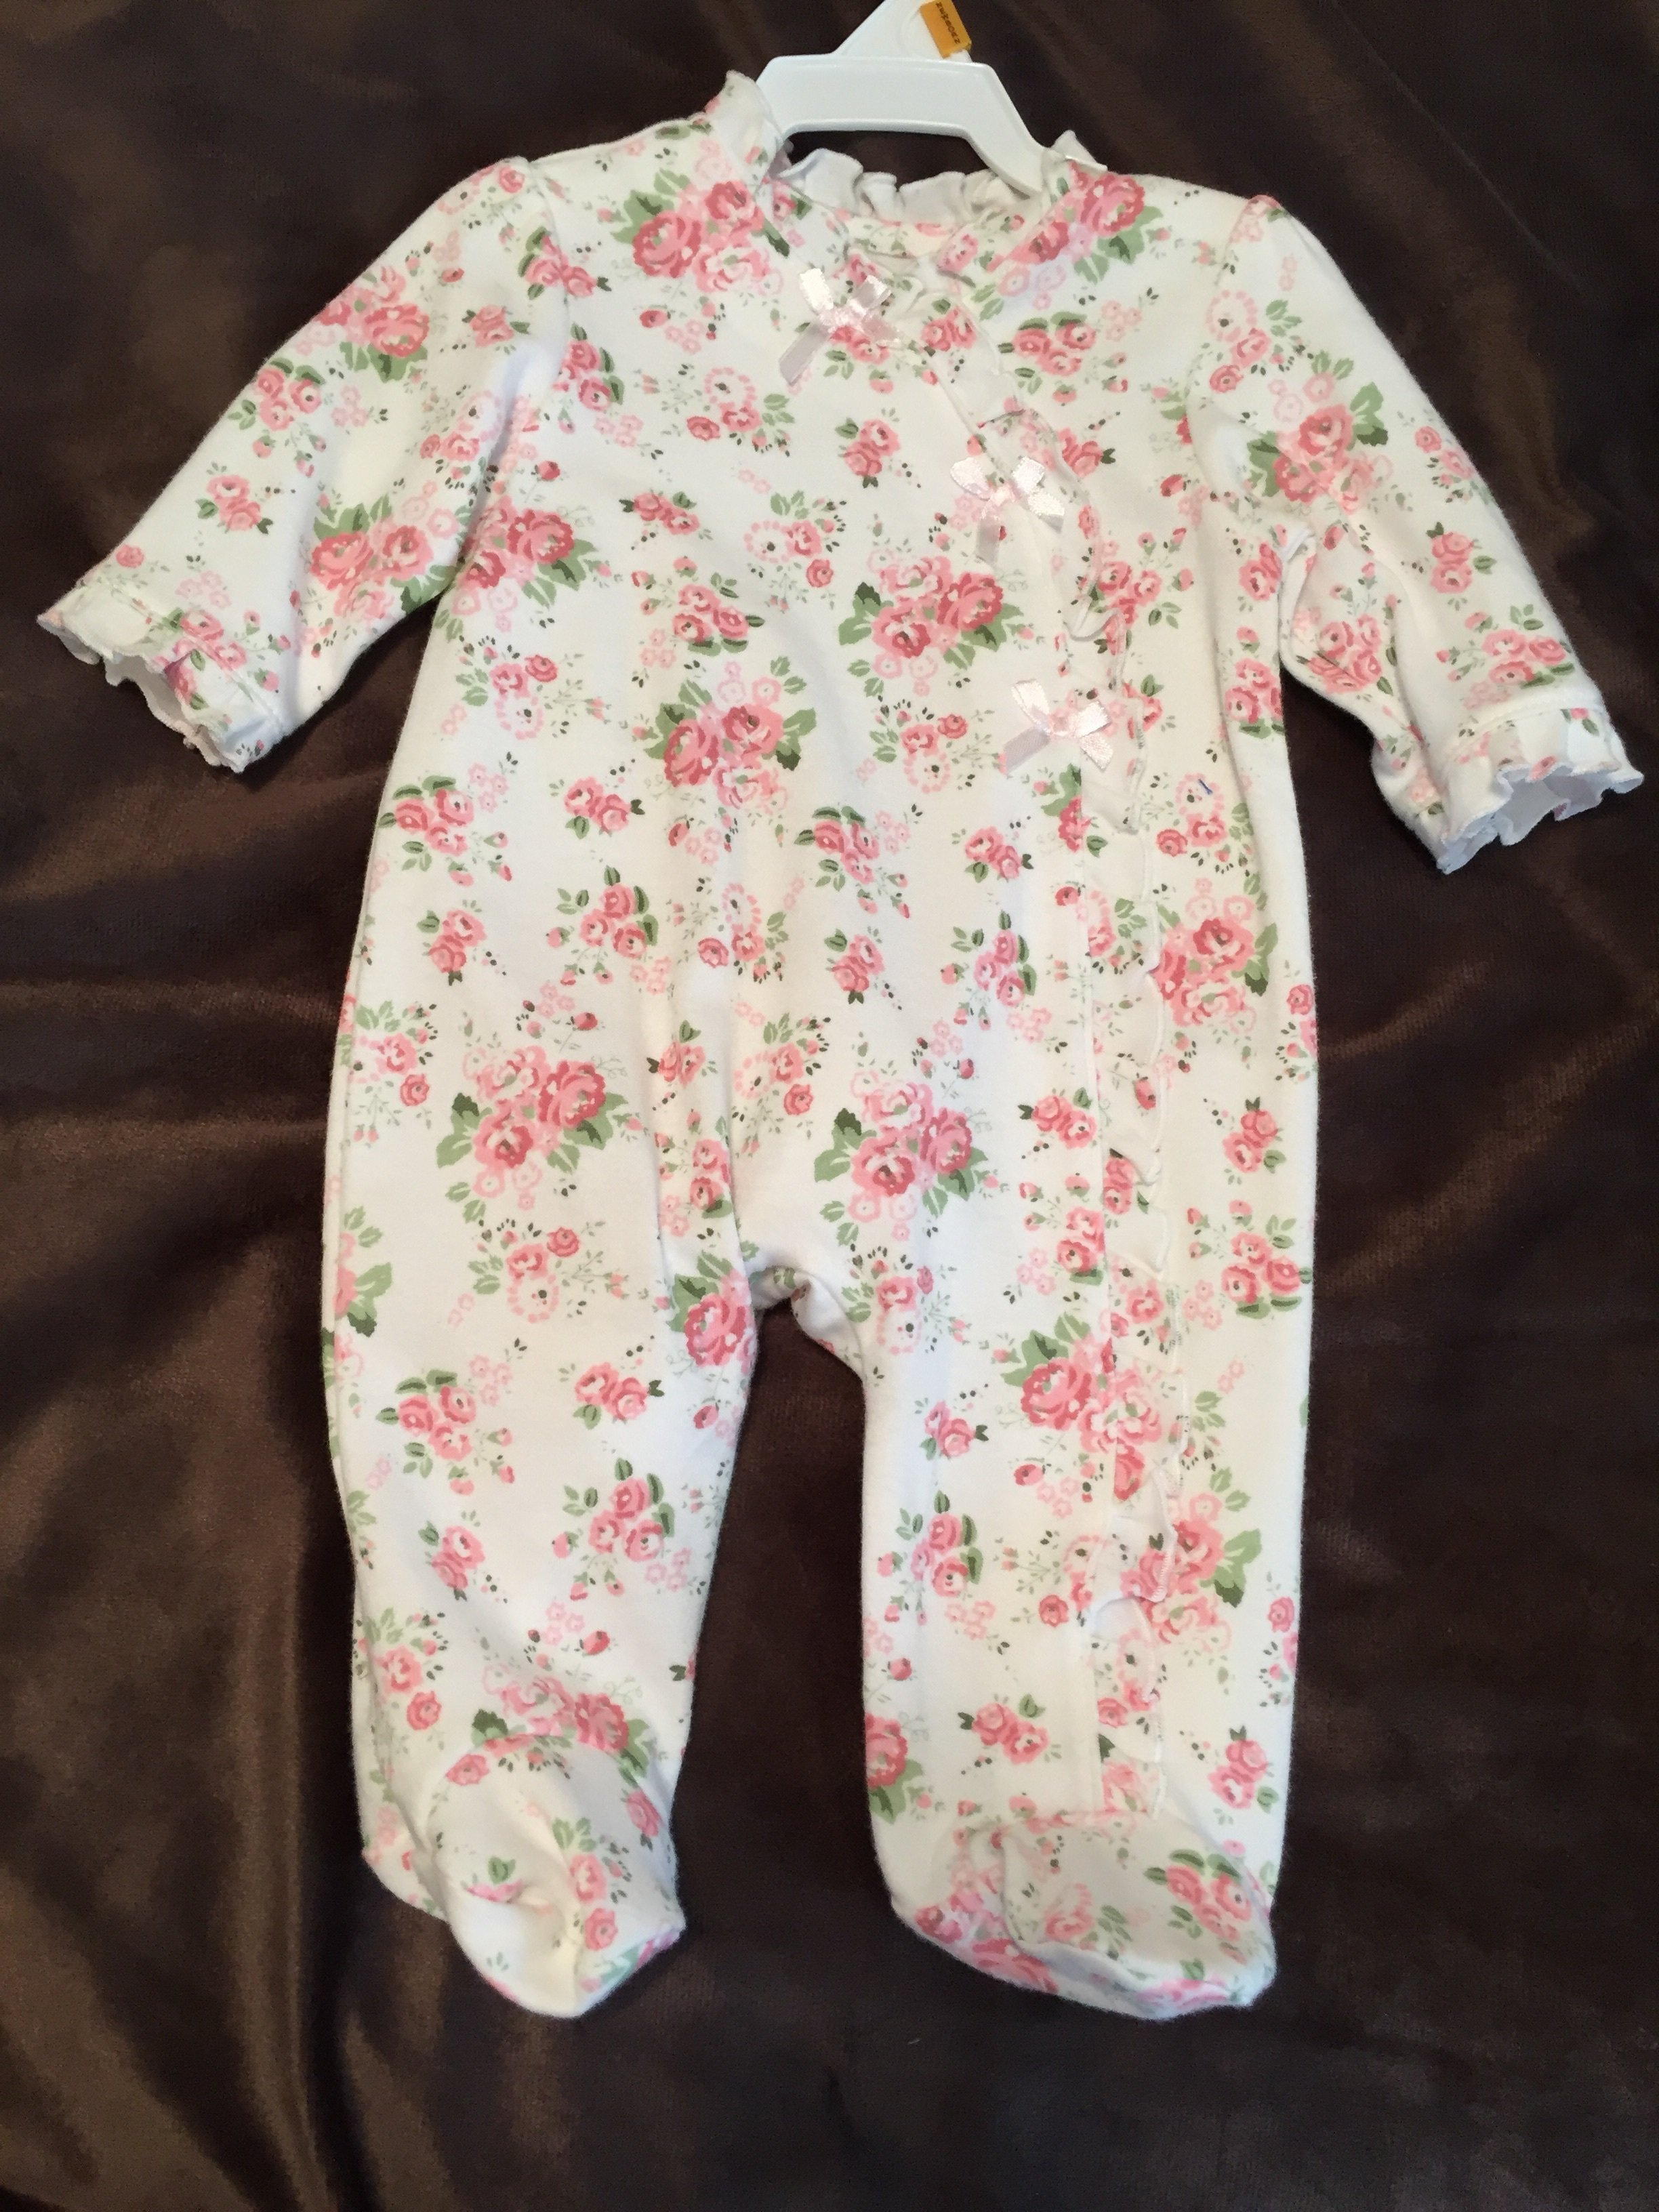 ISO preemie boy clothes - For Sale/Wanted - Bountiful Baby ...